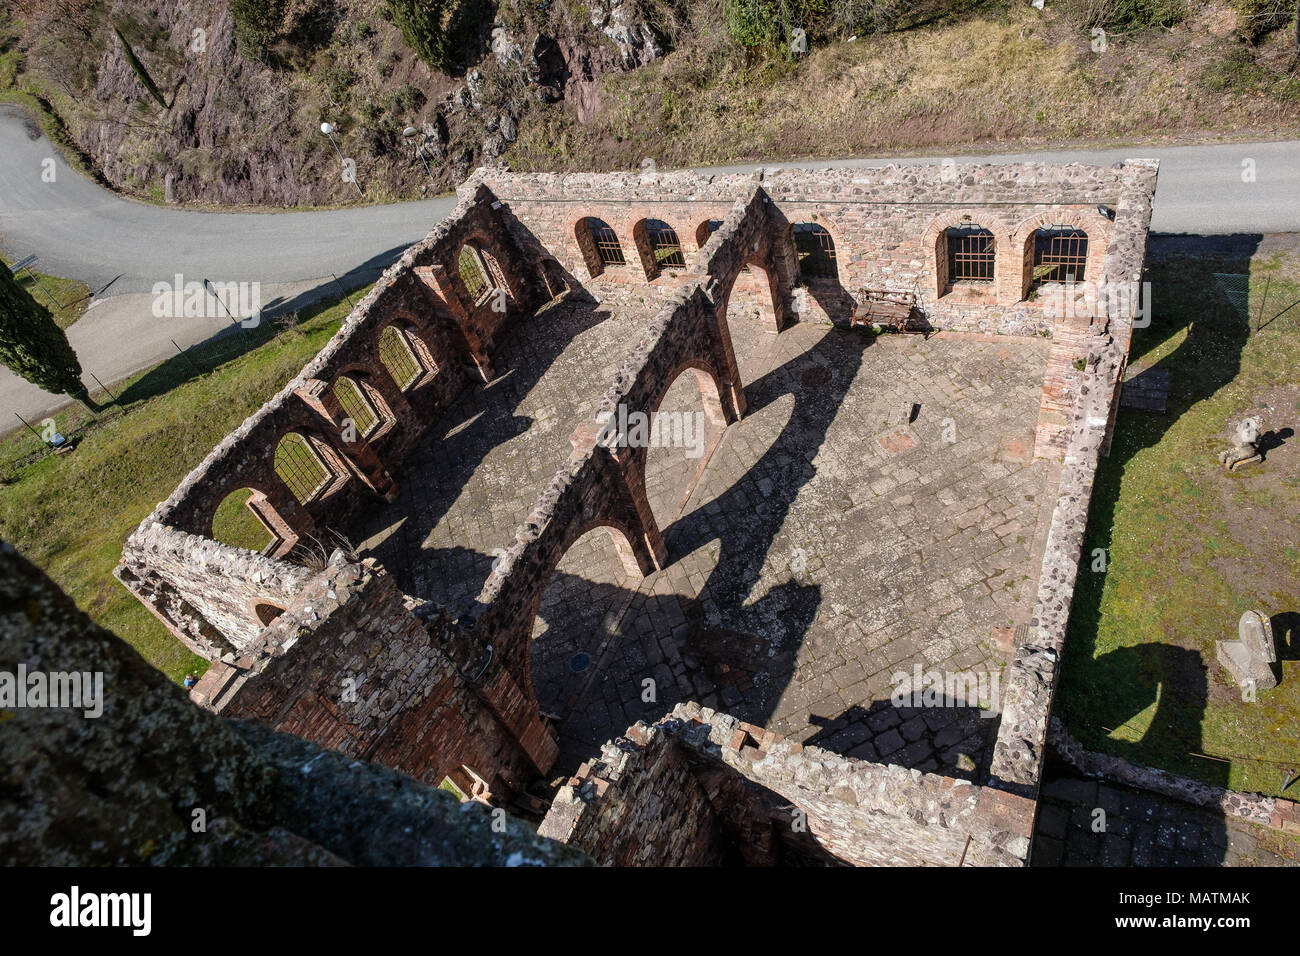 MONTECATINI VAL DI CECINA, ITALY - Avril 02, 2018: Montecatini Val di Cecina is a town in the province of Pisa in Tuscany, Italy - The copper mine - Stock Image